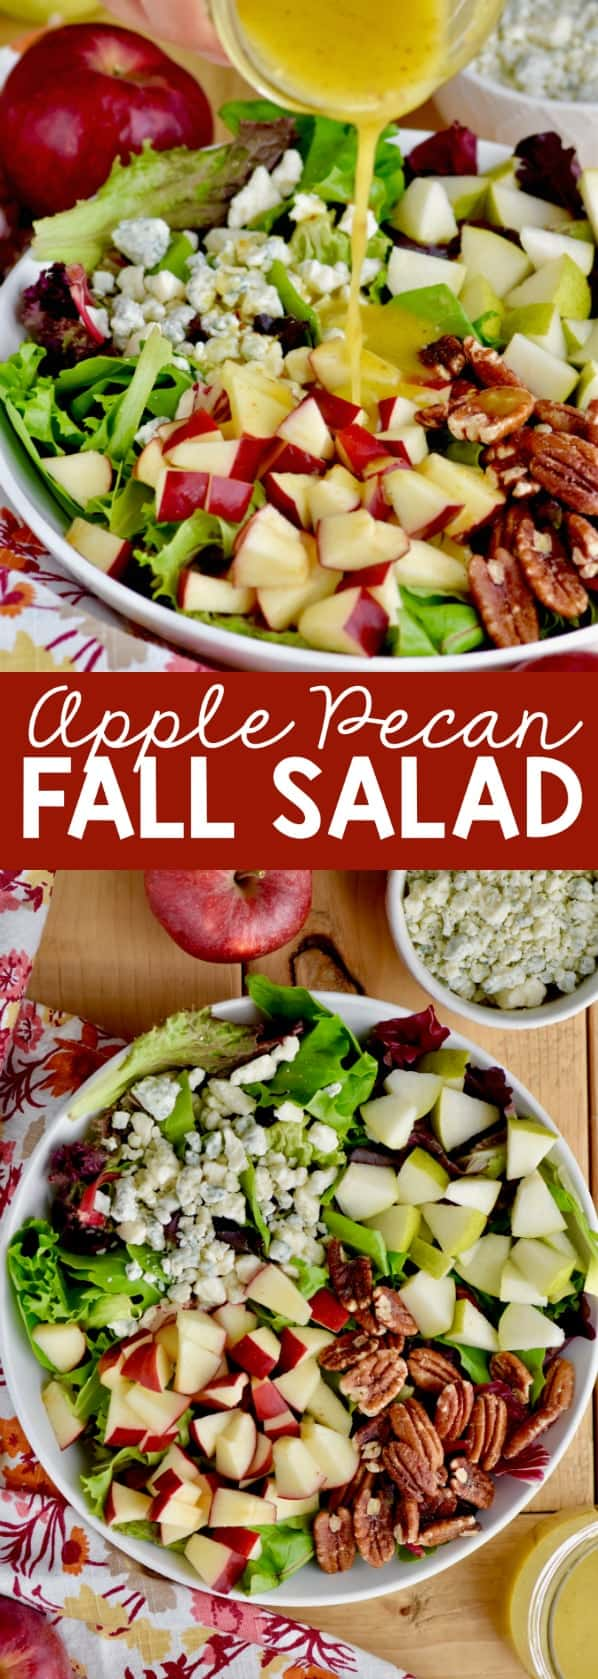 The Apple Pecan Fall Salad has red and green triangle apple slices, pecans, blue cheese, and salad greens being topped with a honey mustard dressing.